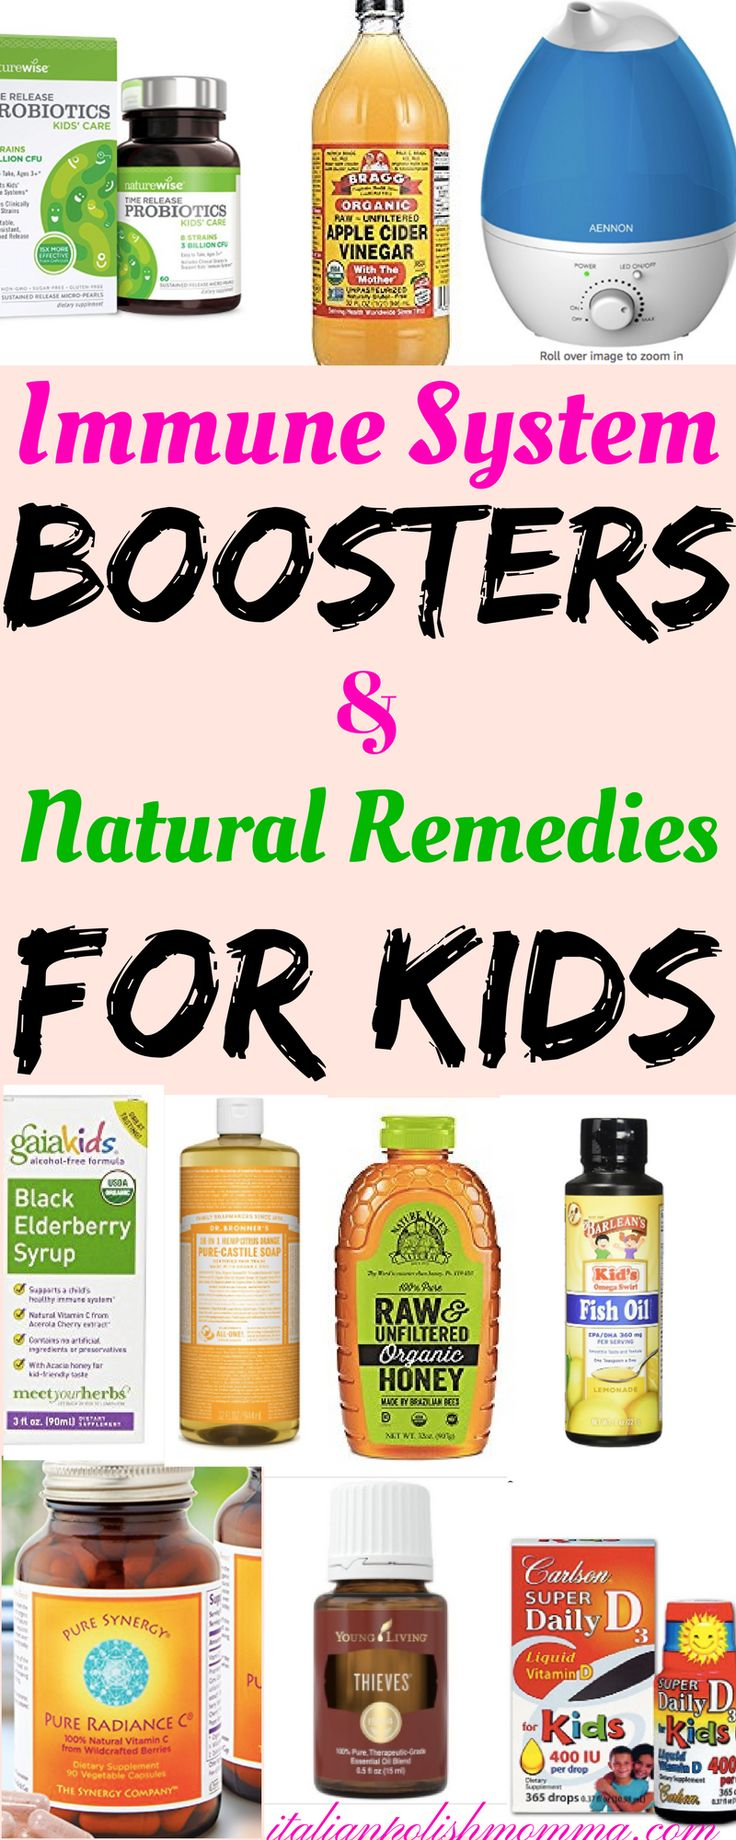 This is what has honestly helped keep my kids healthy! Immune system booster vitamins and natural remedies for kids! Your must-have supplements to keep your kids healthy this school year and protect them from cold and flu season!